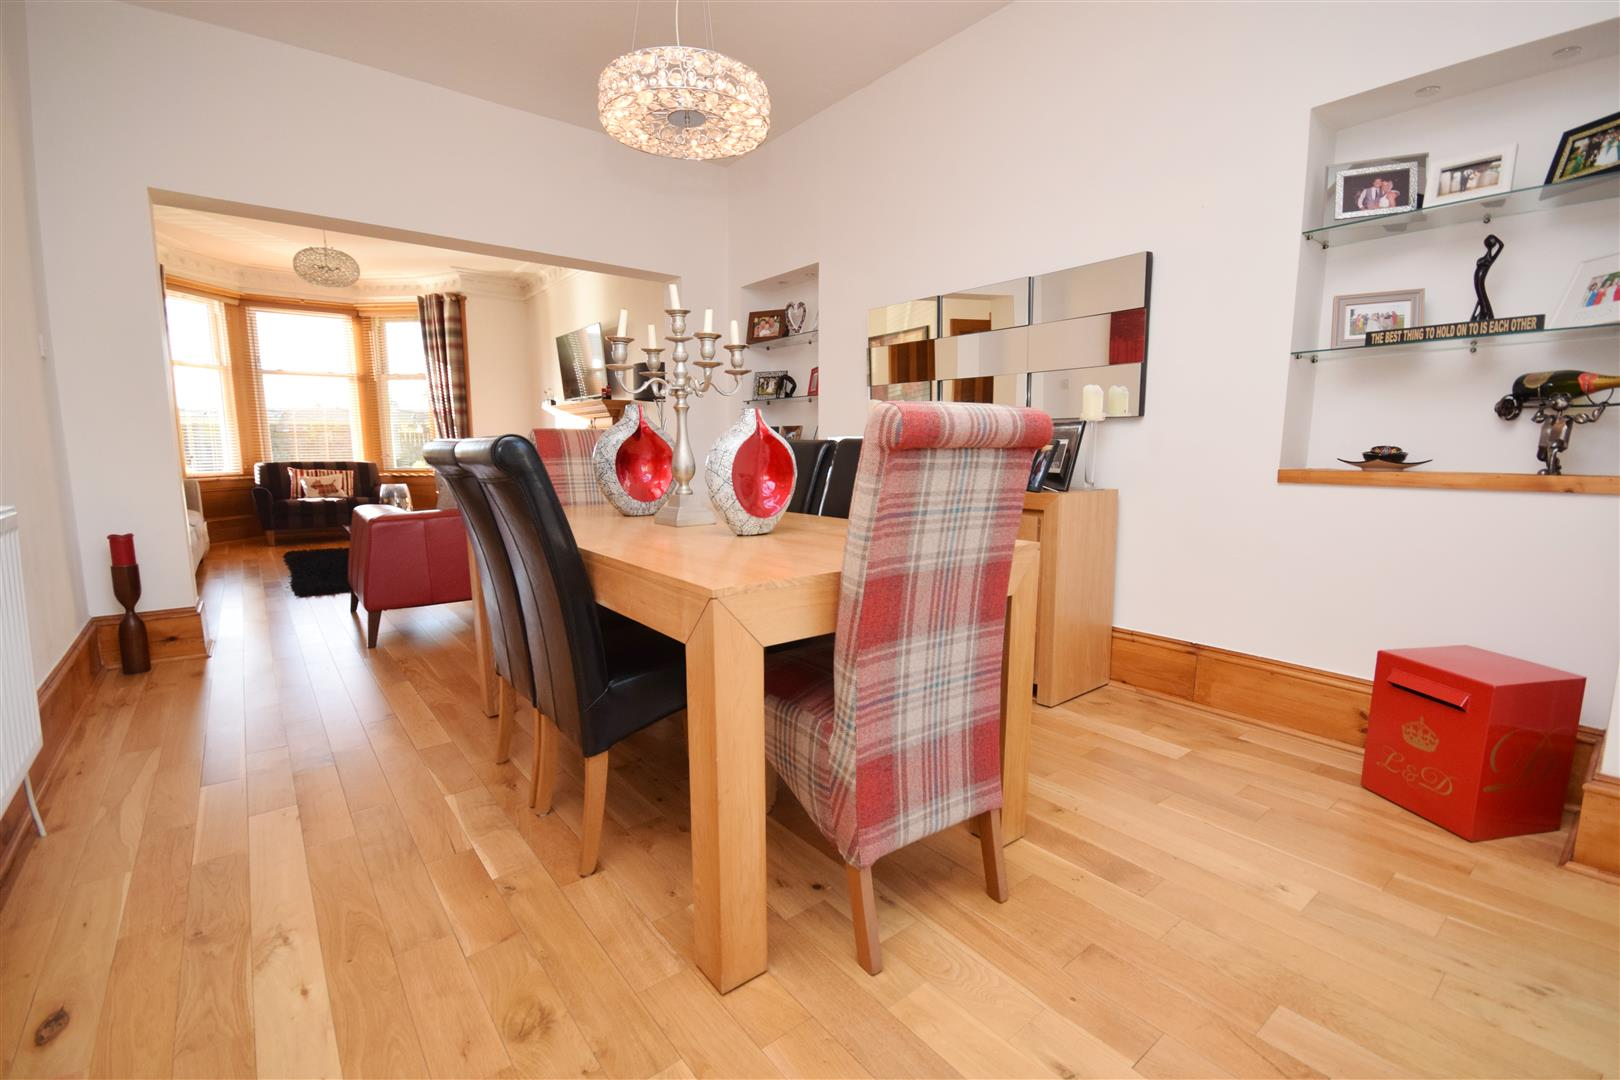 57, Clepington Road, Dundee, Angus, DD4 7EP, UK